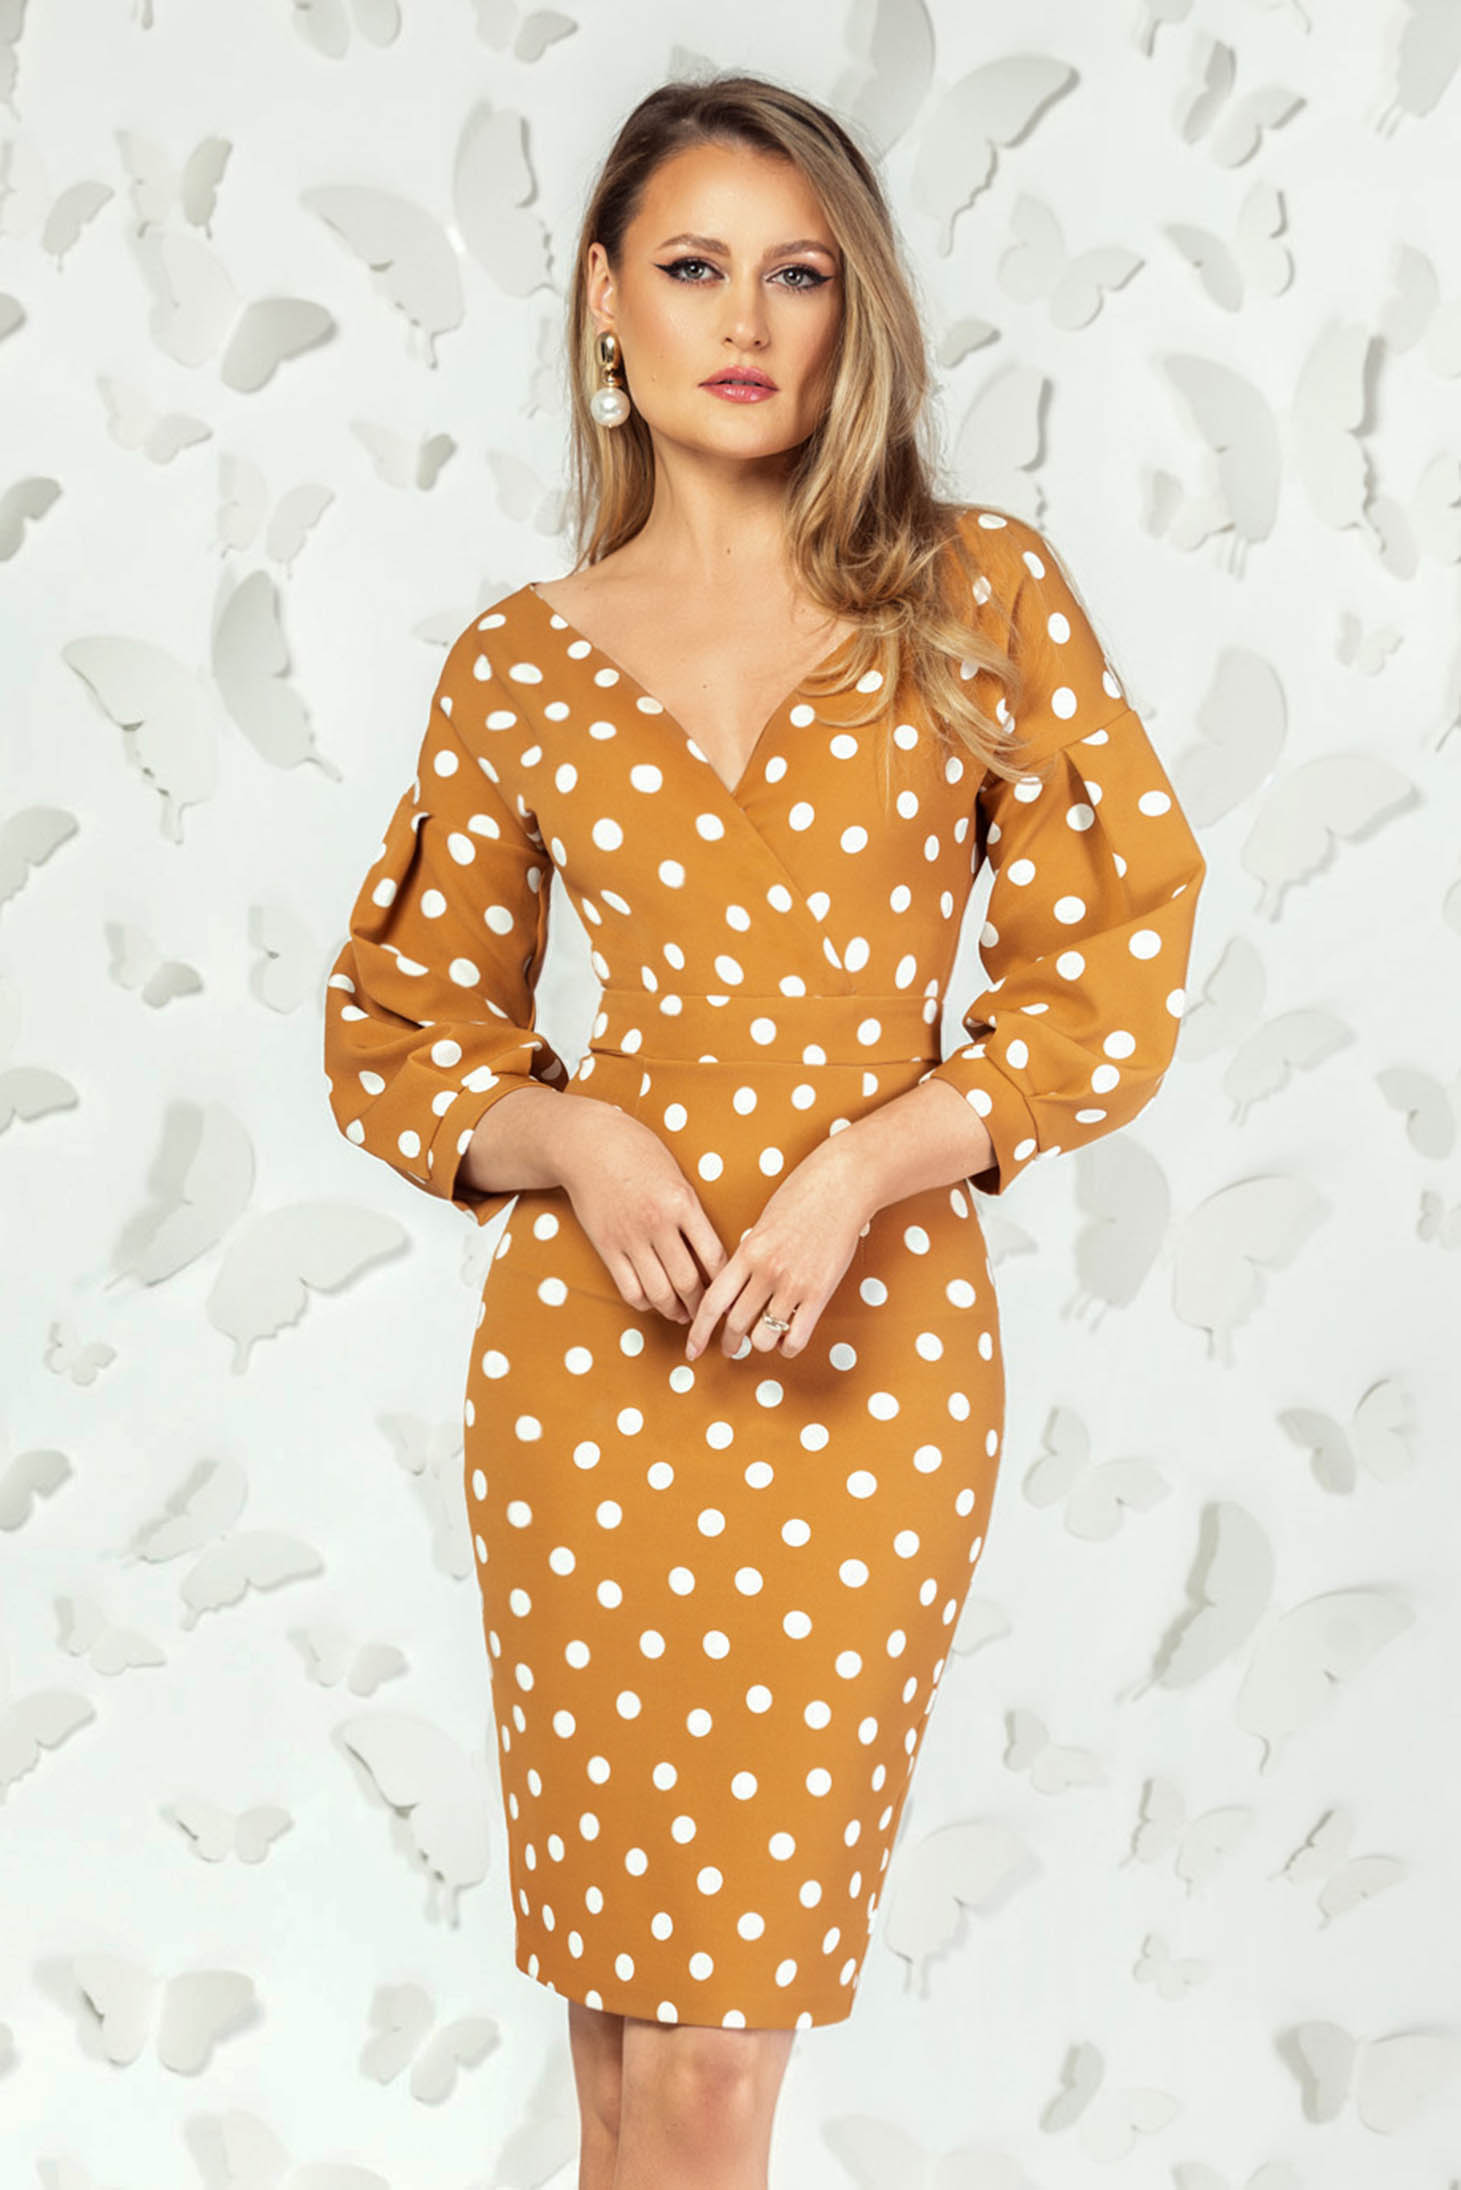 Mustard dress office pencil with deep cleavage with puffed sleeves dots print